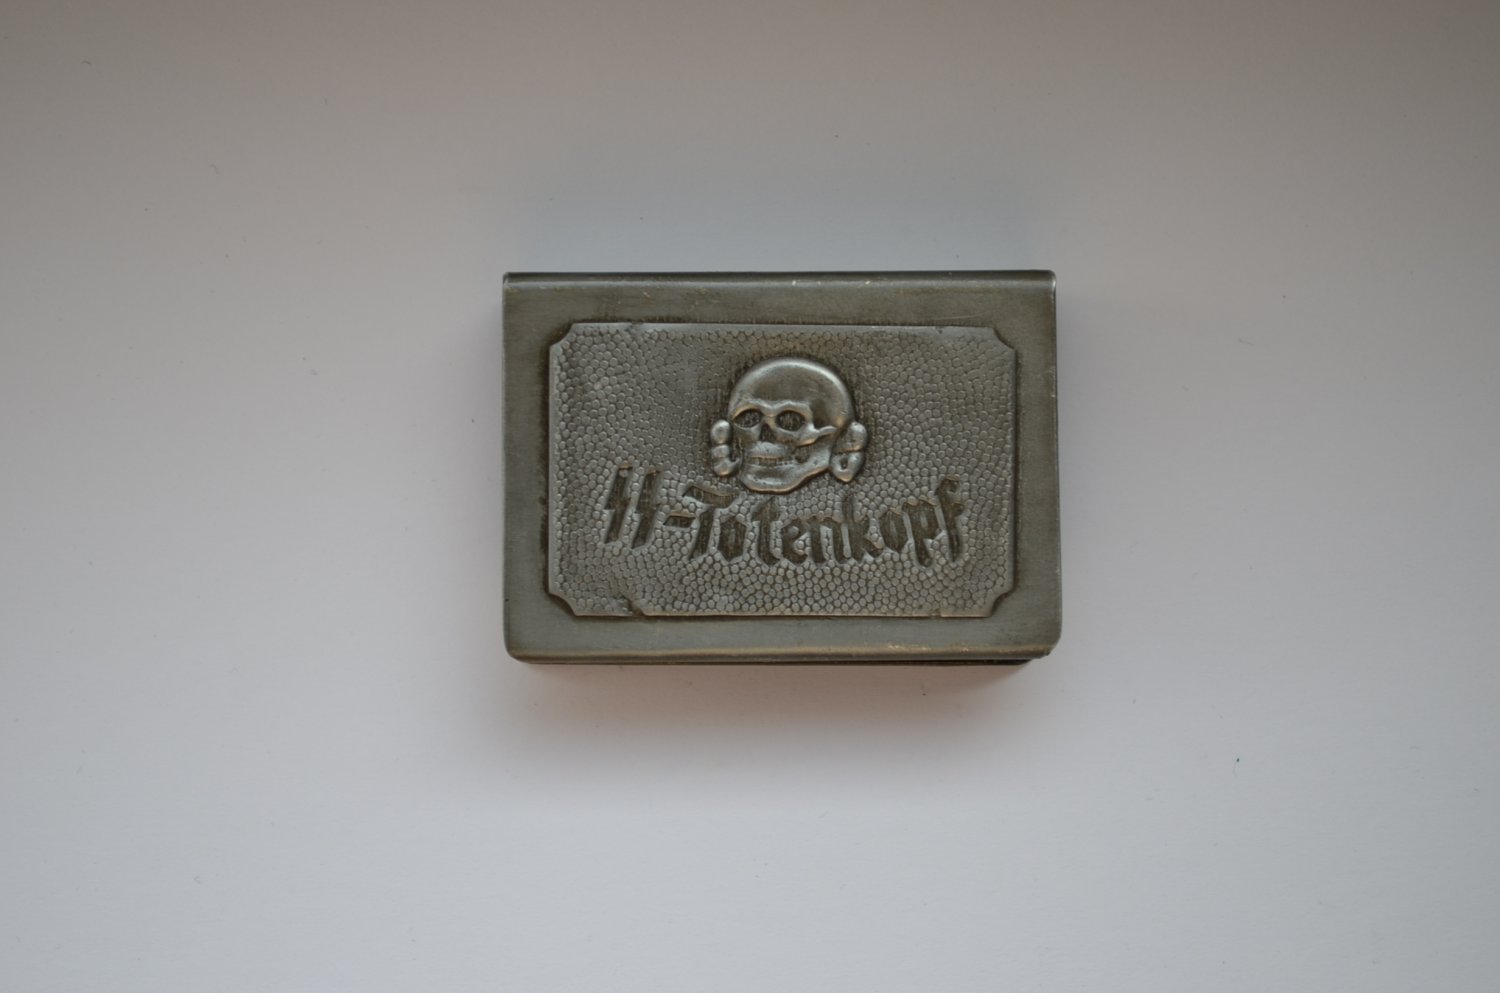 WWII THE GERMAN HOLDER/COVER ON MATCHBOX SS-TOTENKOPF